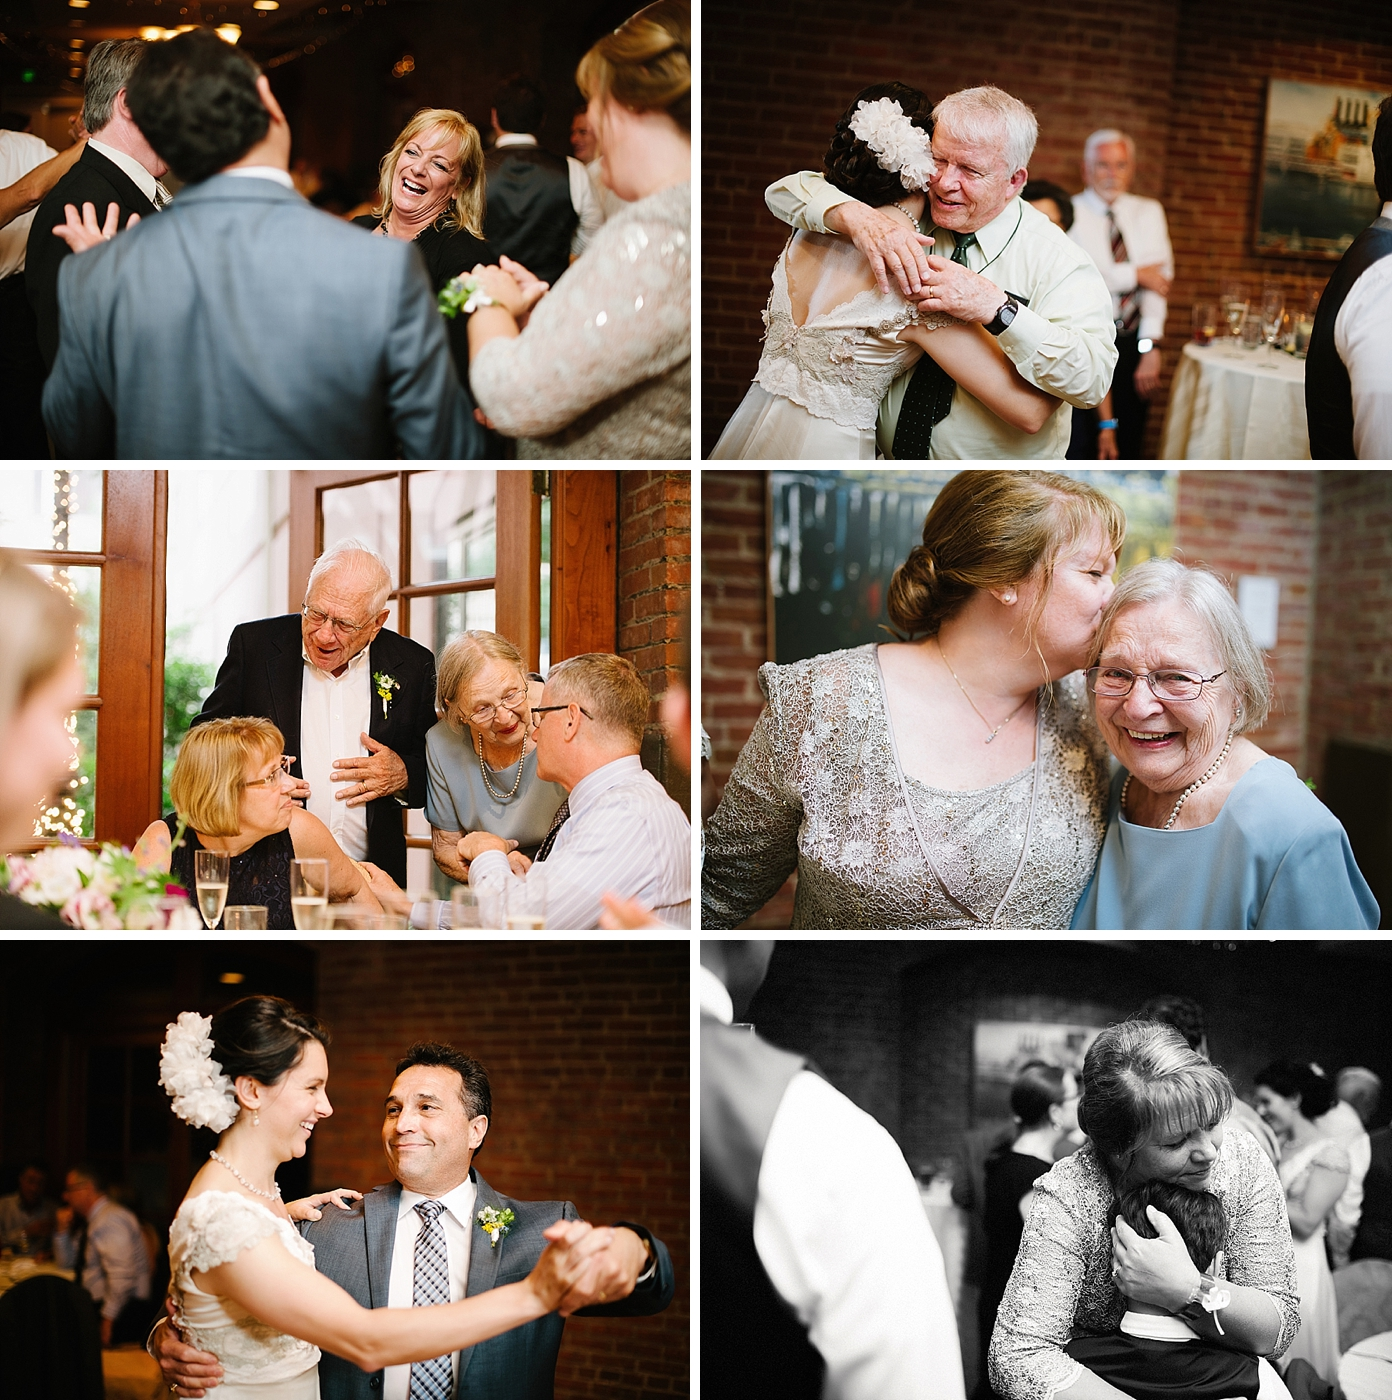 2262-Baltimore-wedding-photographer-kirsten-marie-photography